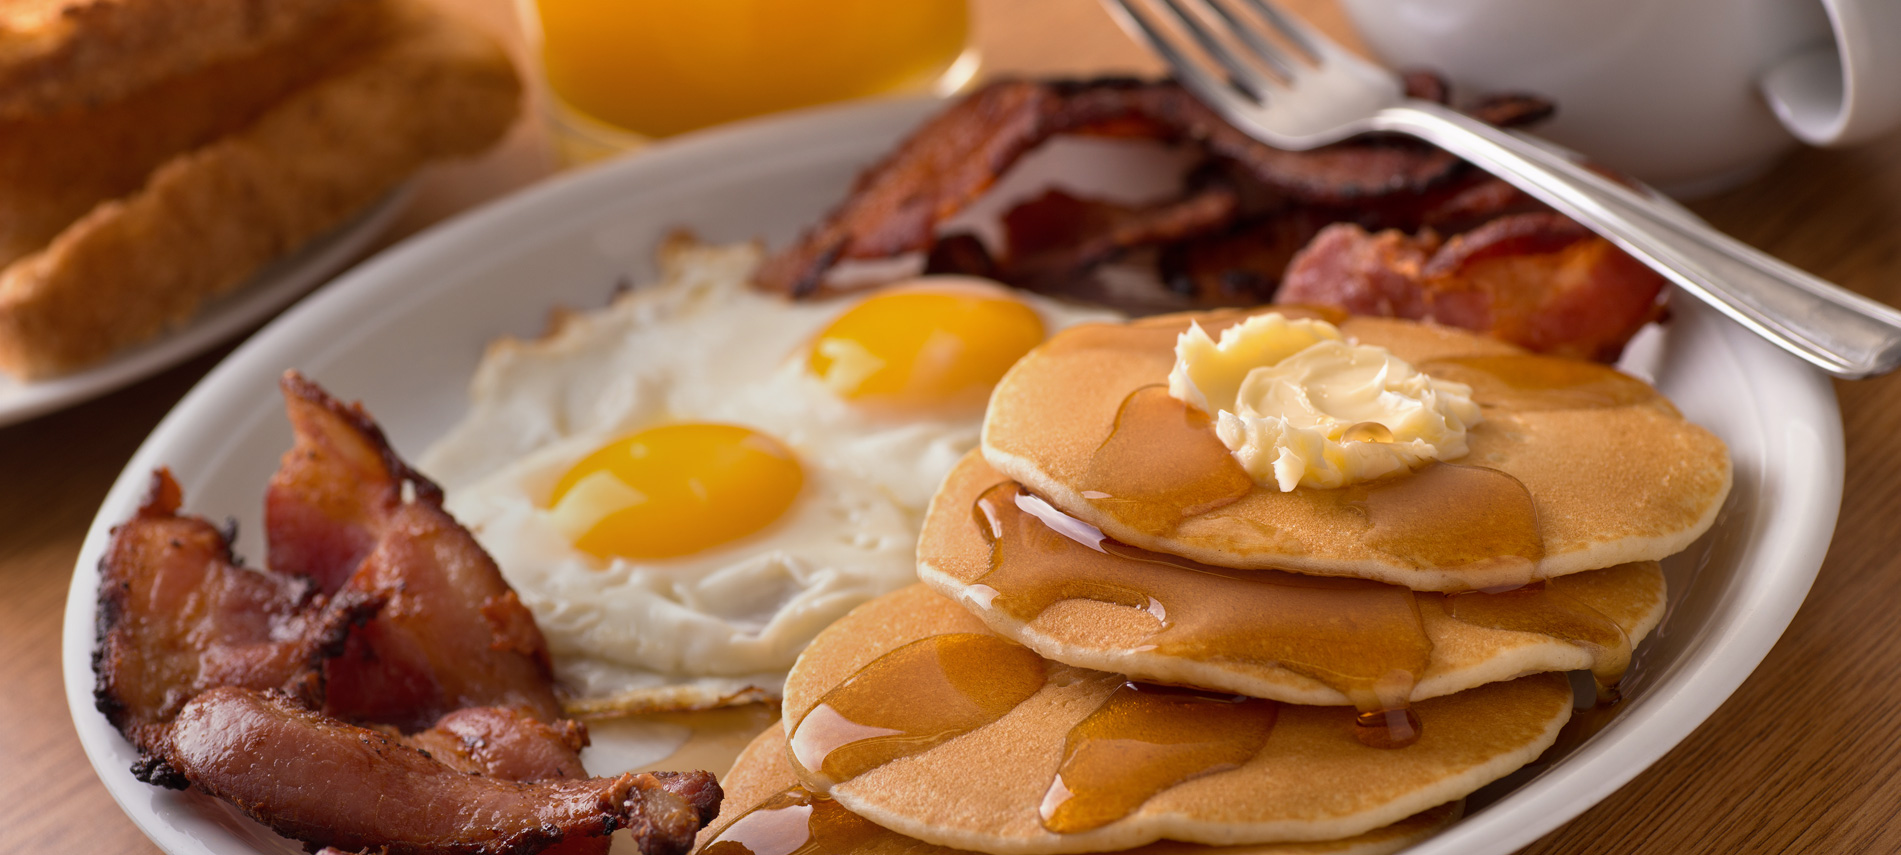 Allure RestaurantBuffet Breakfast Daily Only $17.50